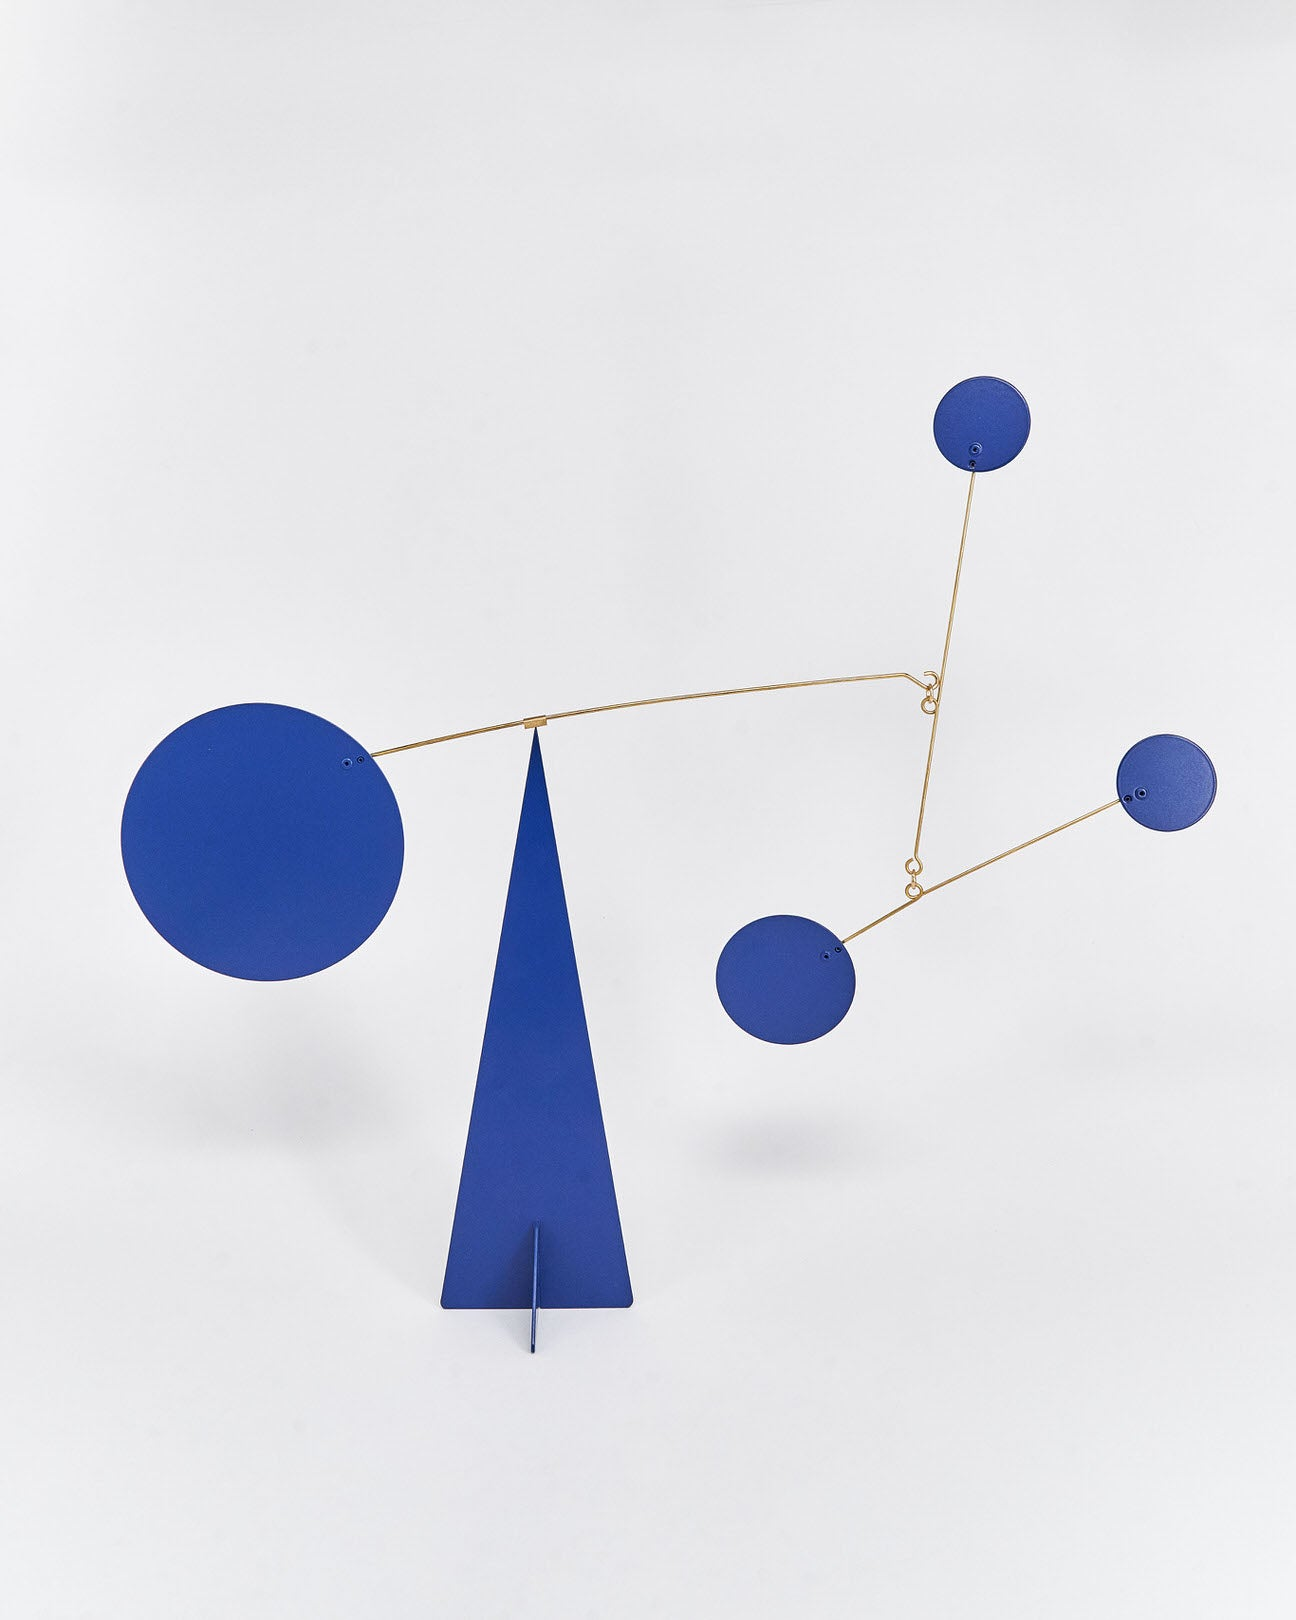 Mobile-Istanbul-Volta-Calder-Metal-Blue-Handmade-Nuovum-Barcelona-localdesigners-Front